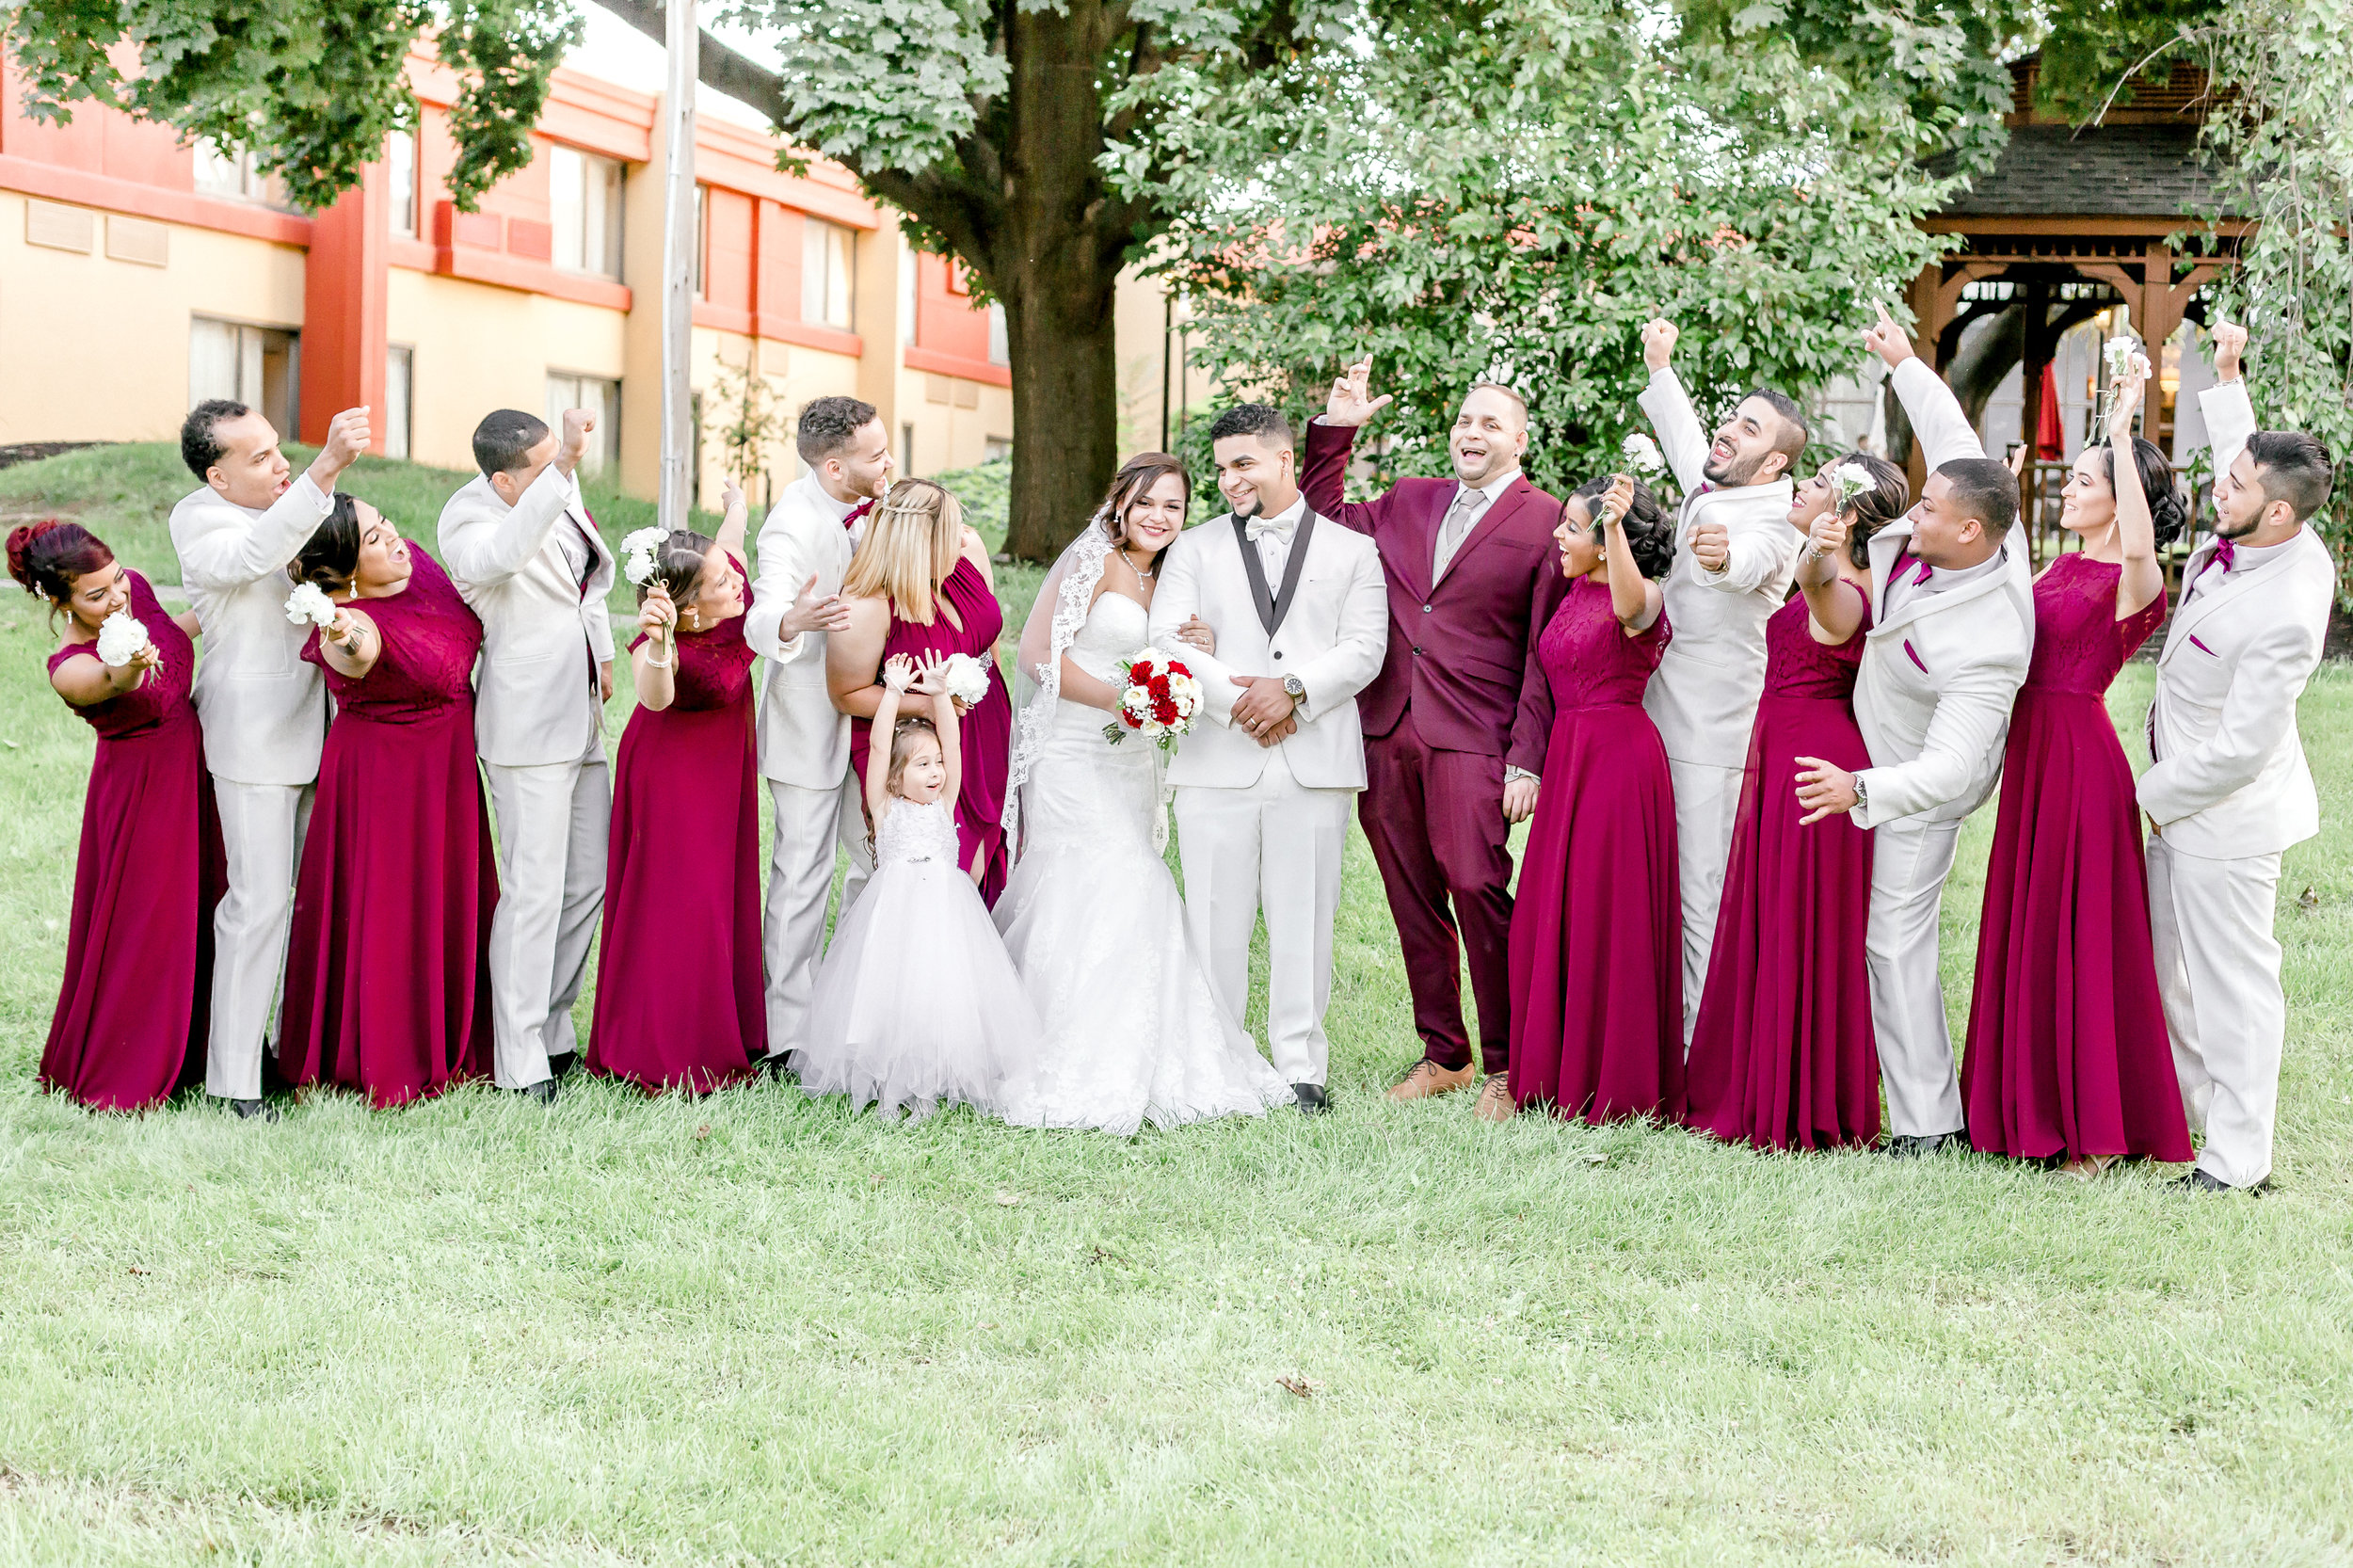 Crowne Plaza Hotel Reading Pennsylvania burgandy and gold  Wedding Lytle Photo Co (1 of 1)-3.jpg